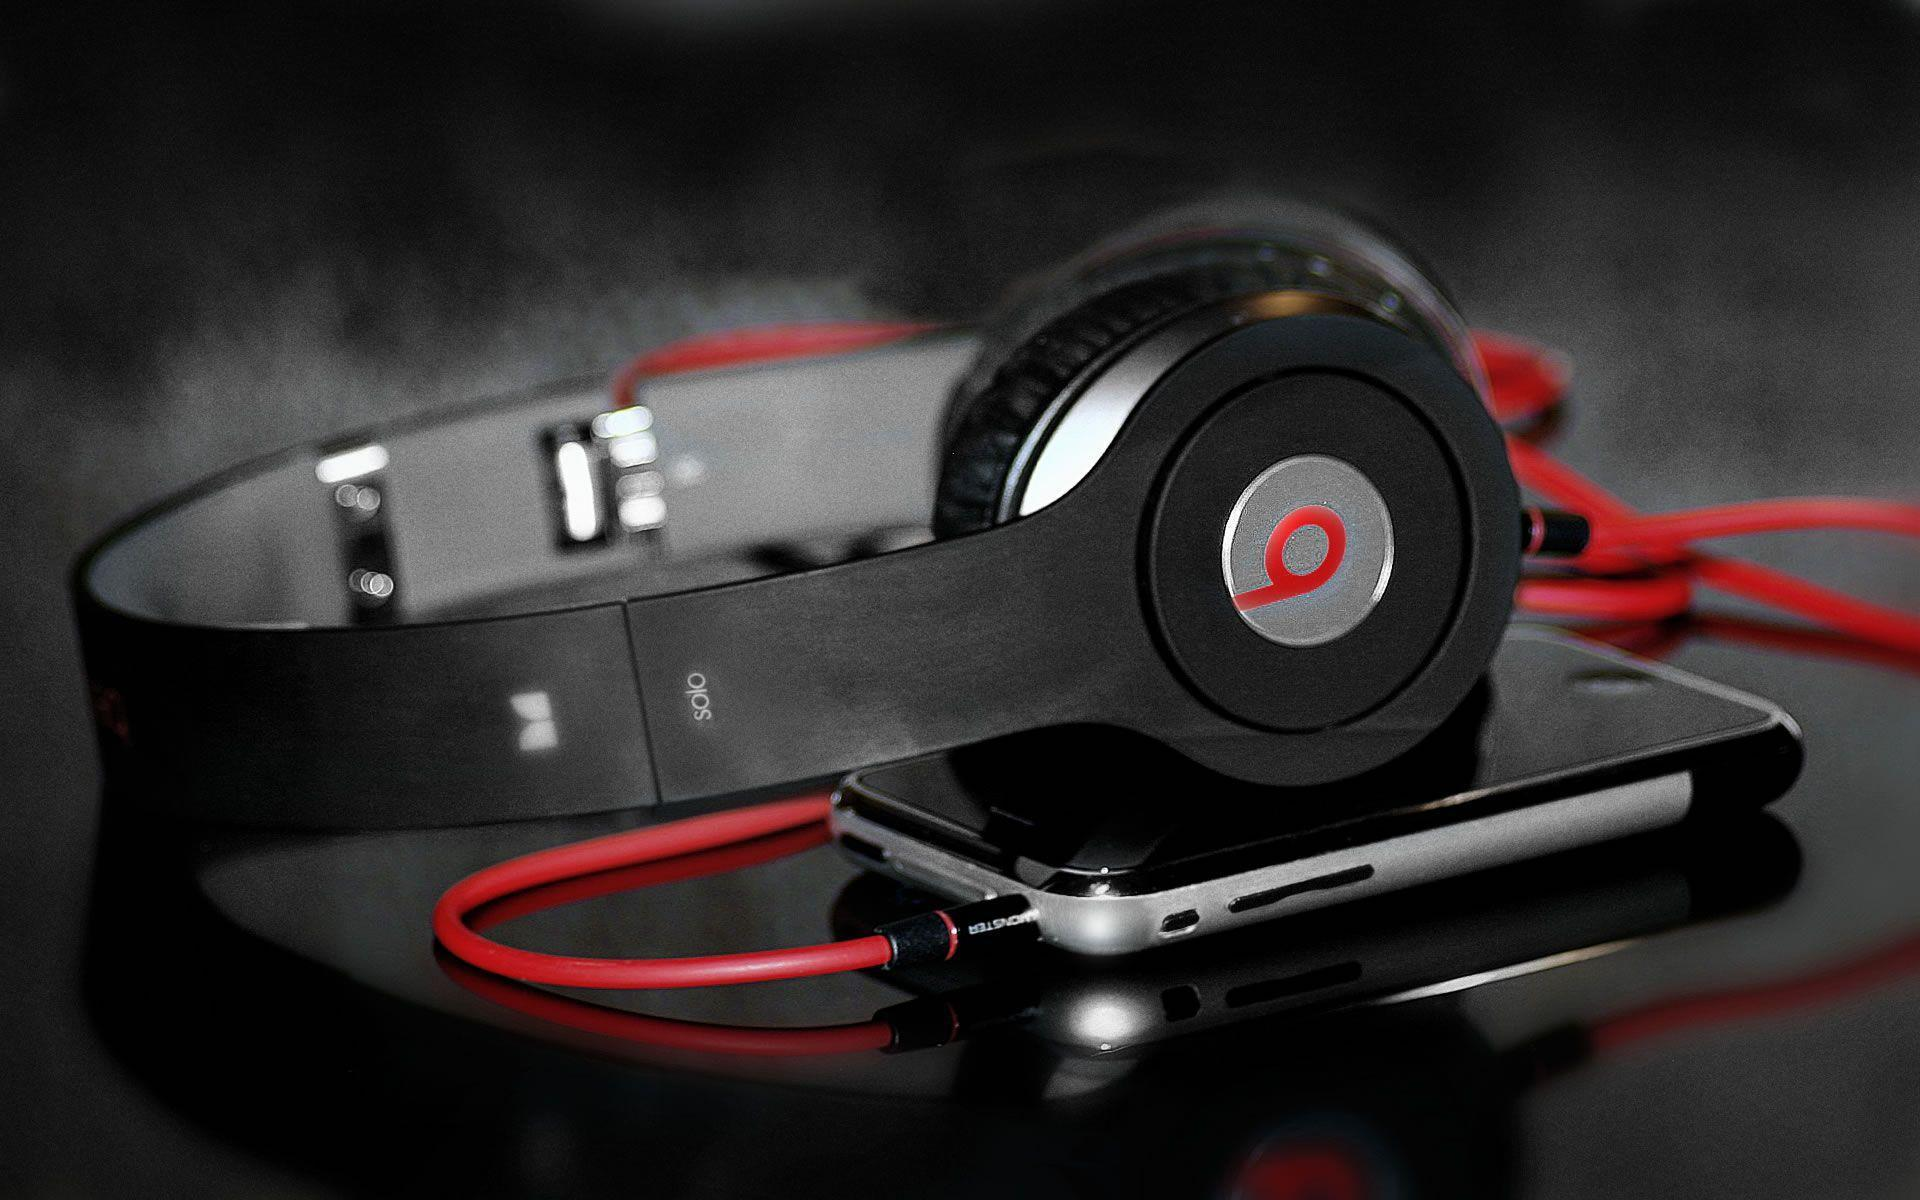 Beats by dre wallpapers wallpaper cave beats by dre wallpapers full hd wallpaper search page 2 voltagebd